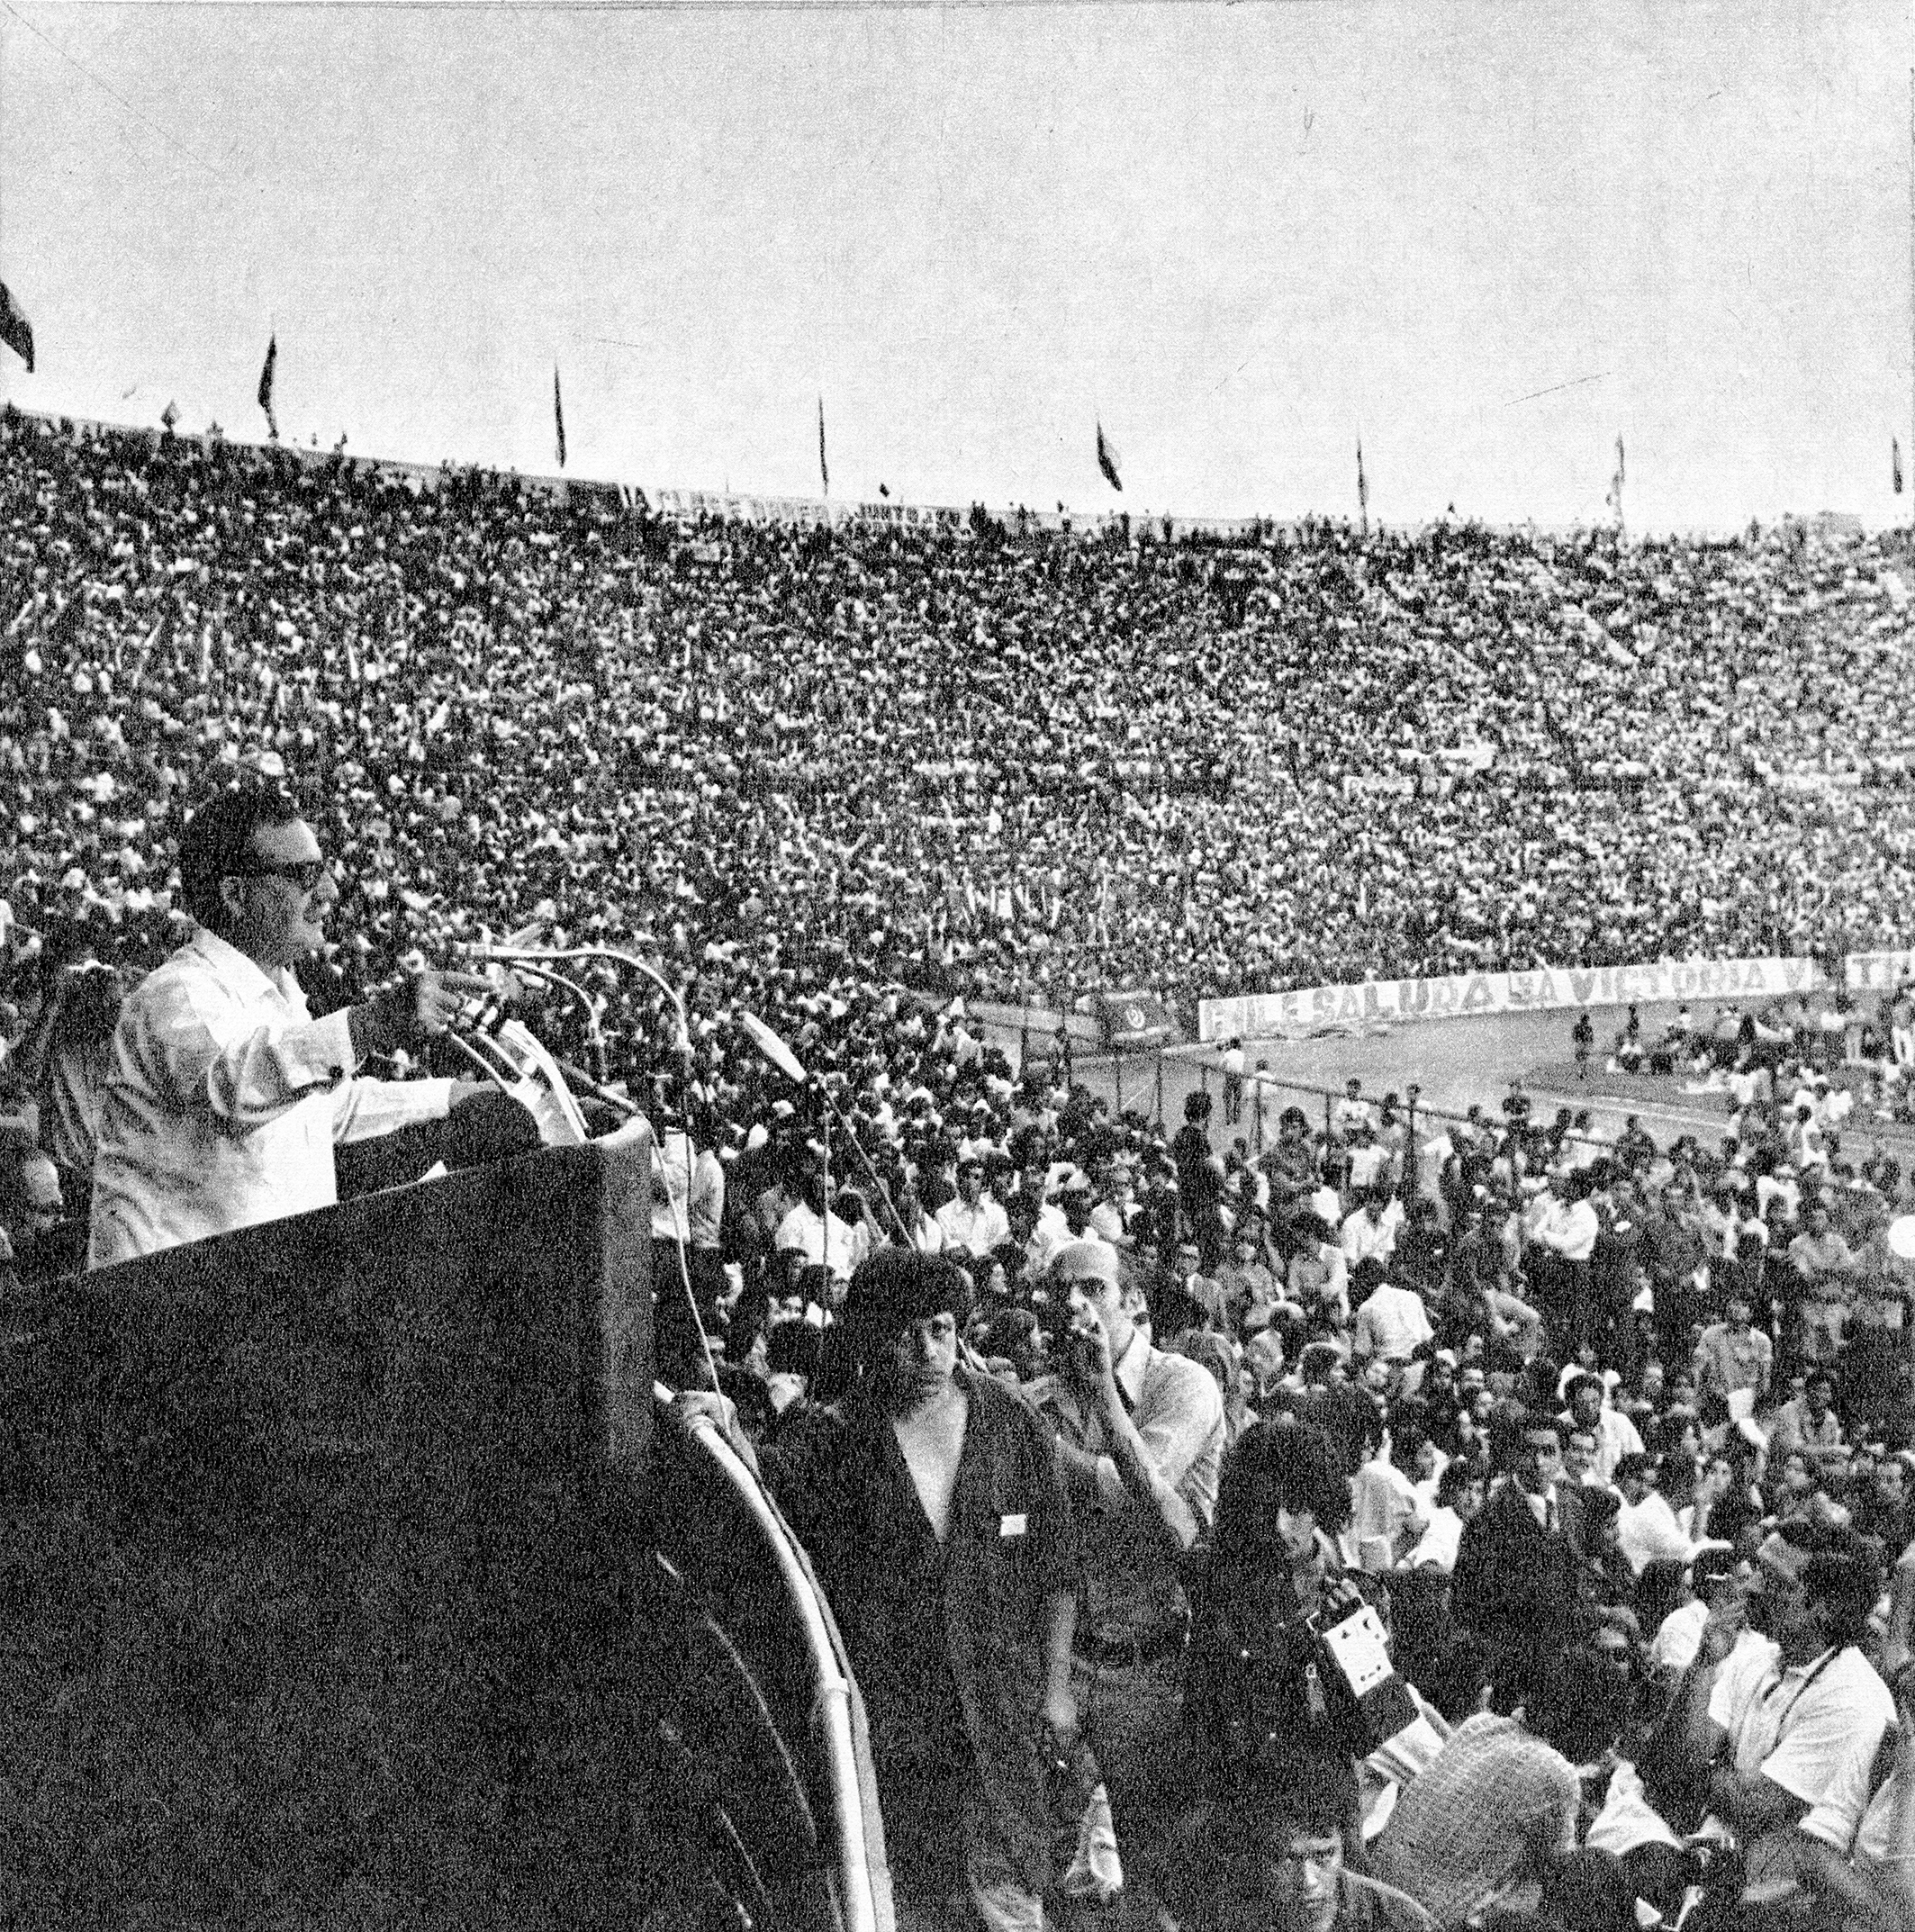 Enterreno - Fotos históricas de chile - fotos antiguas de Chile - Discurso de Allende en el Estadio Nacional